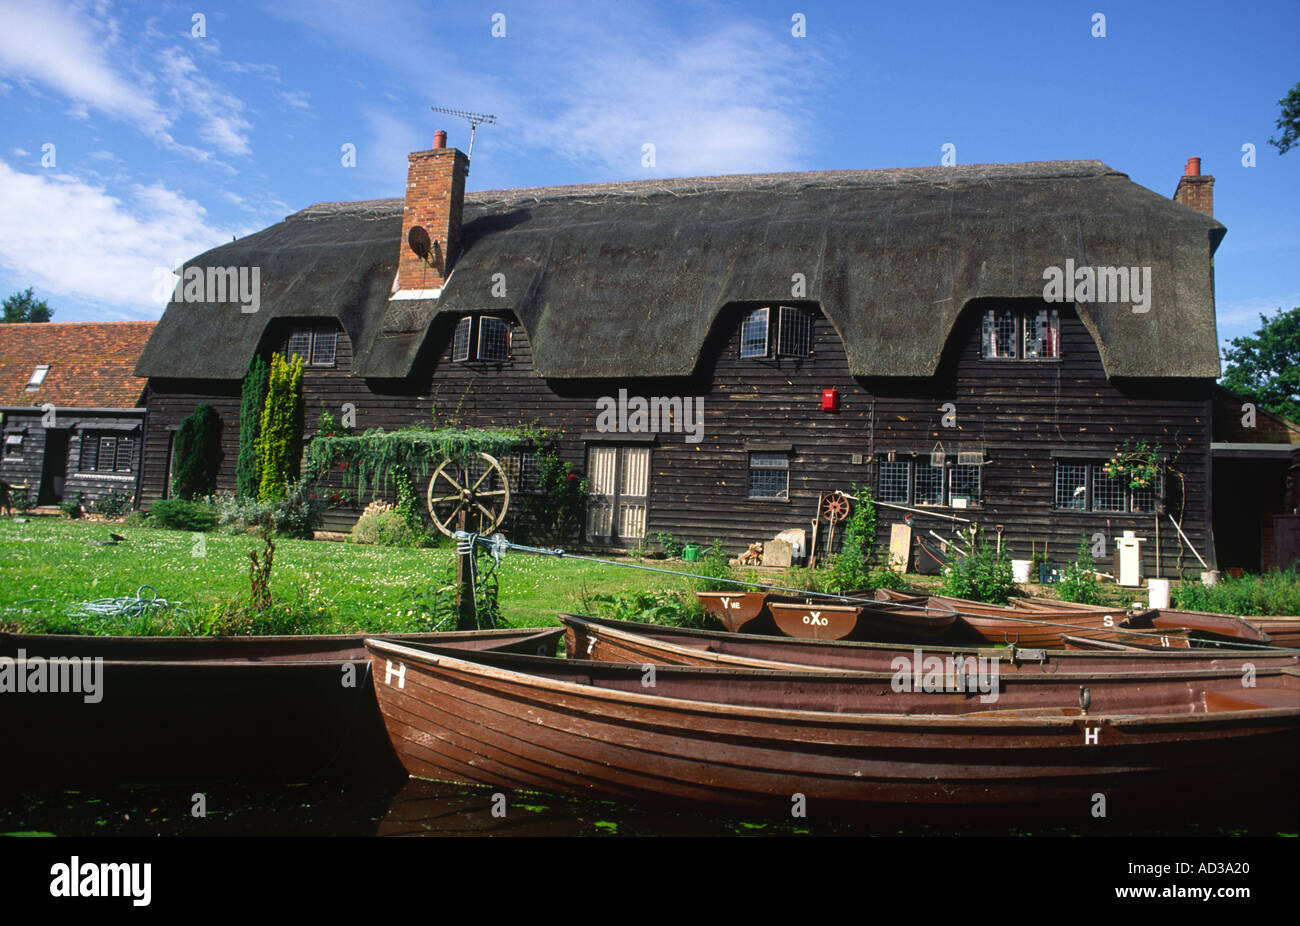 Thatched House on the River Stour near Flatford Mill Flatford Suffolk - Stock Image